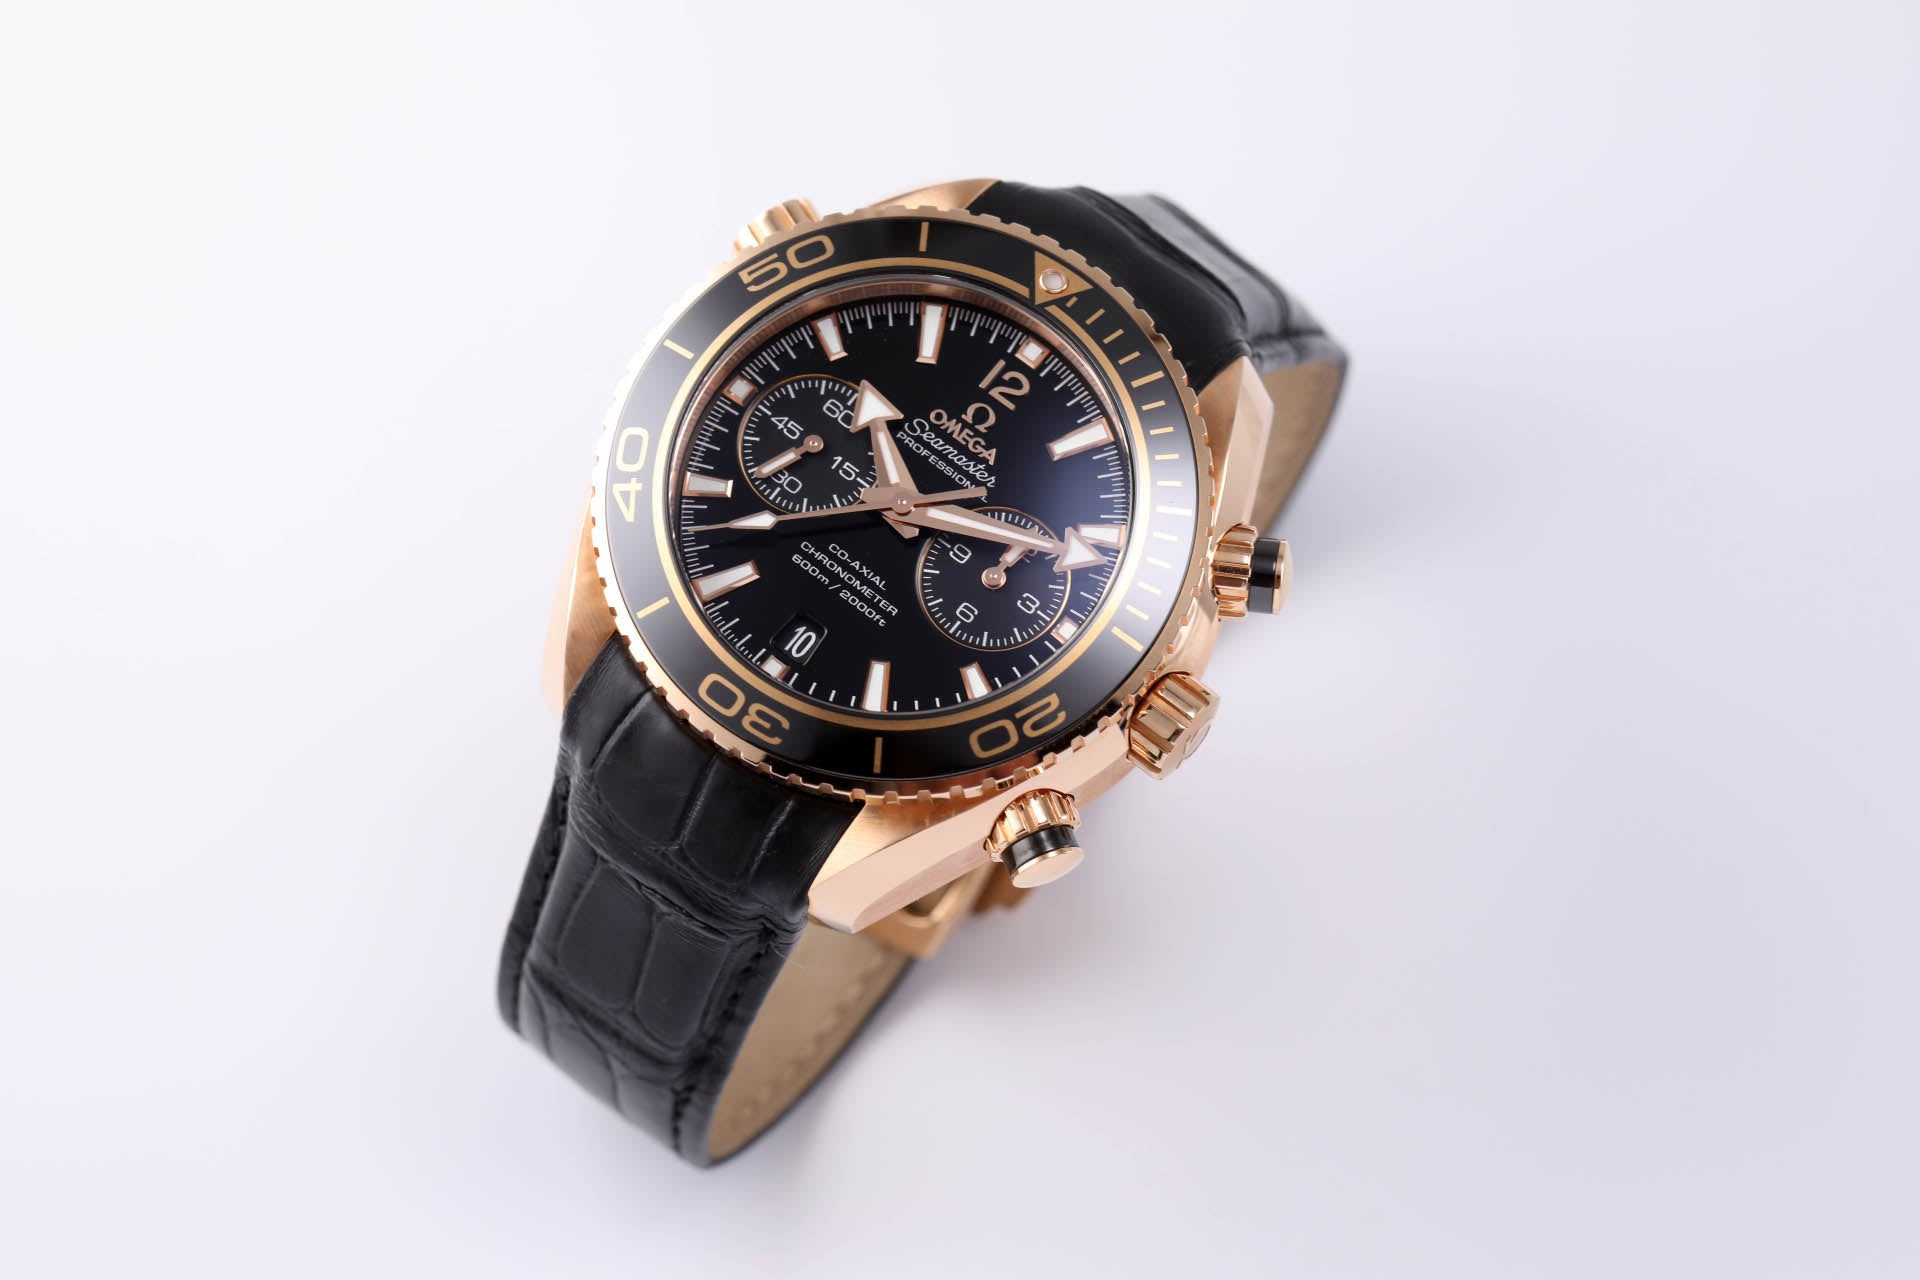 Omega Seamaster Planet Ocean 600m Co-Axial Chronograph 45.5mm